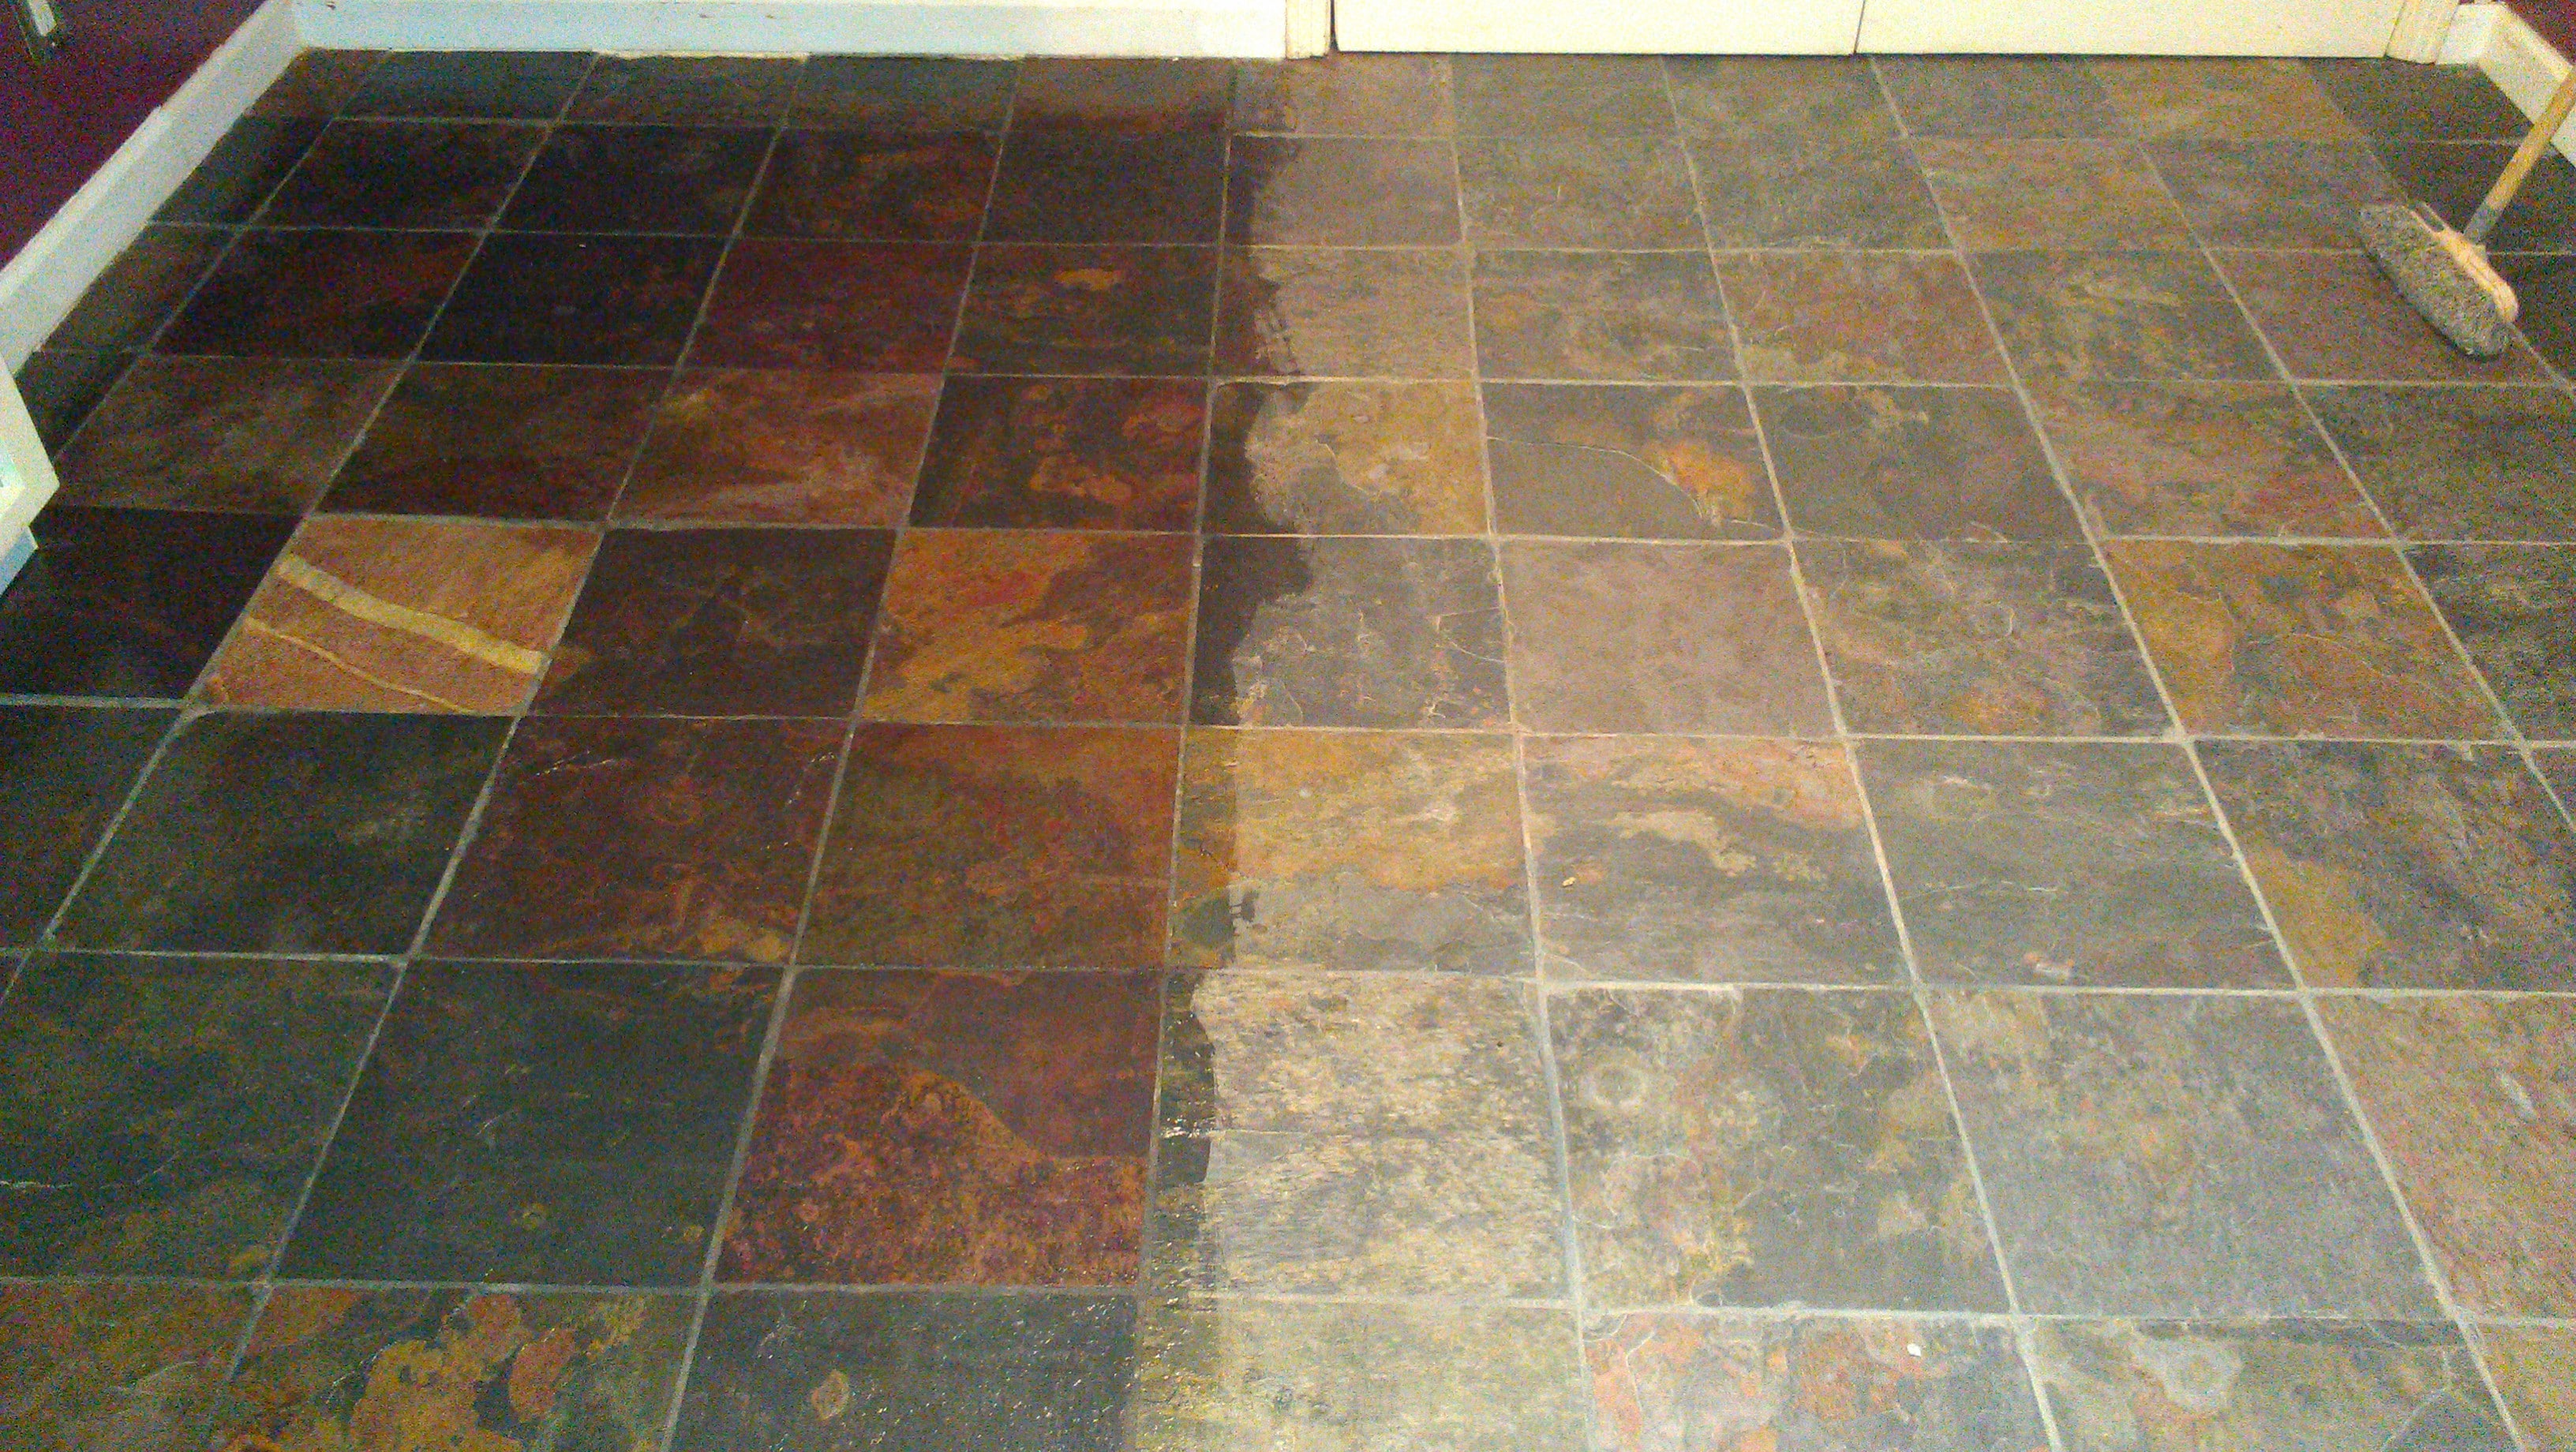 Pictures of tiled floors